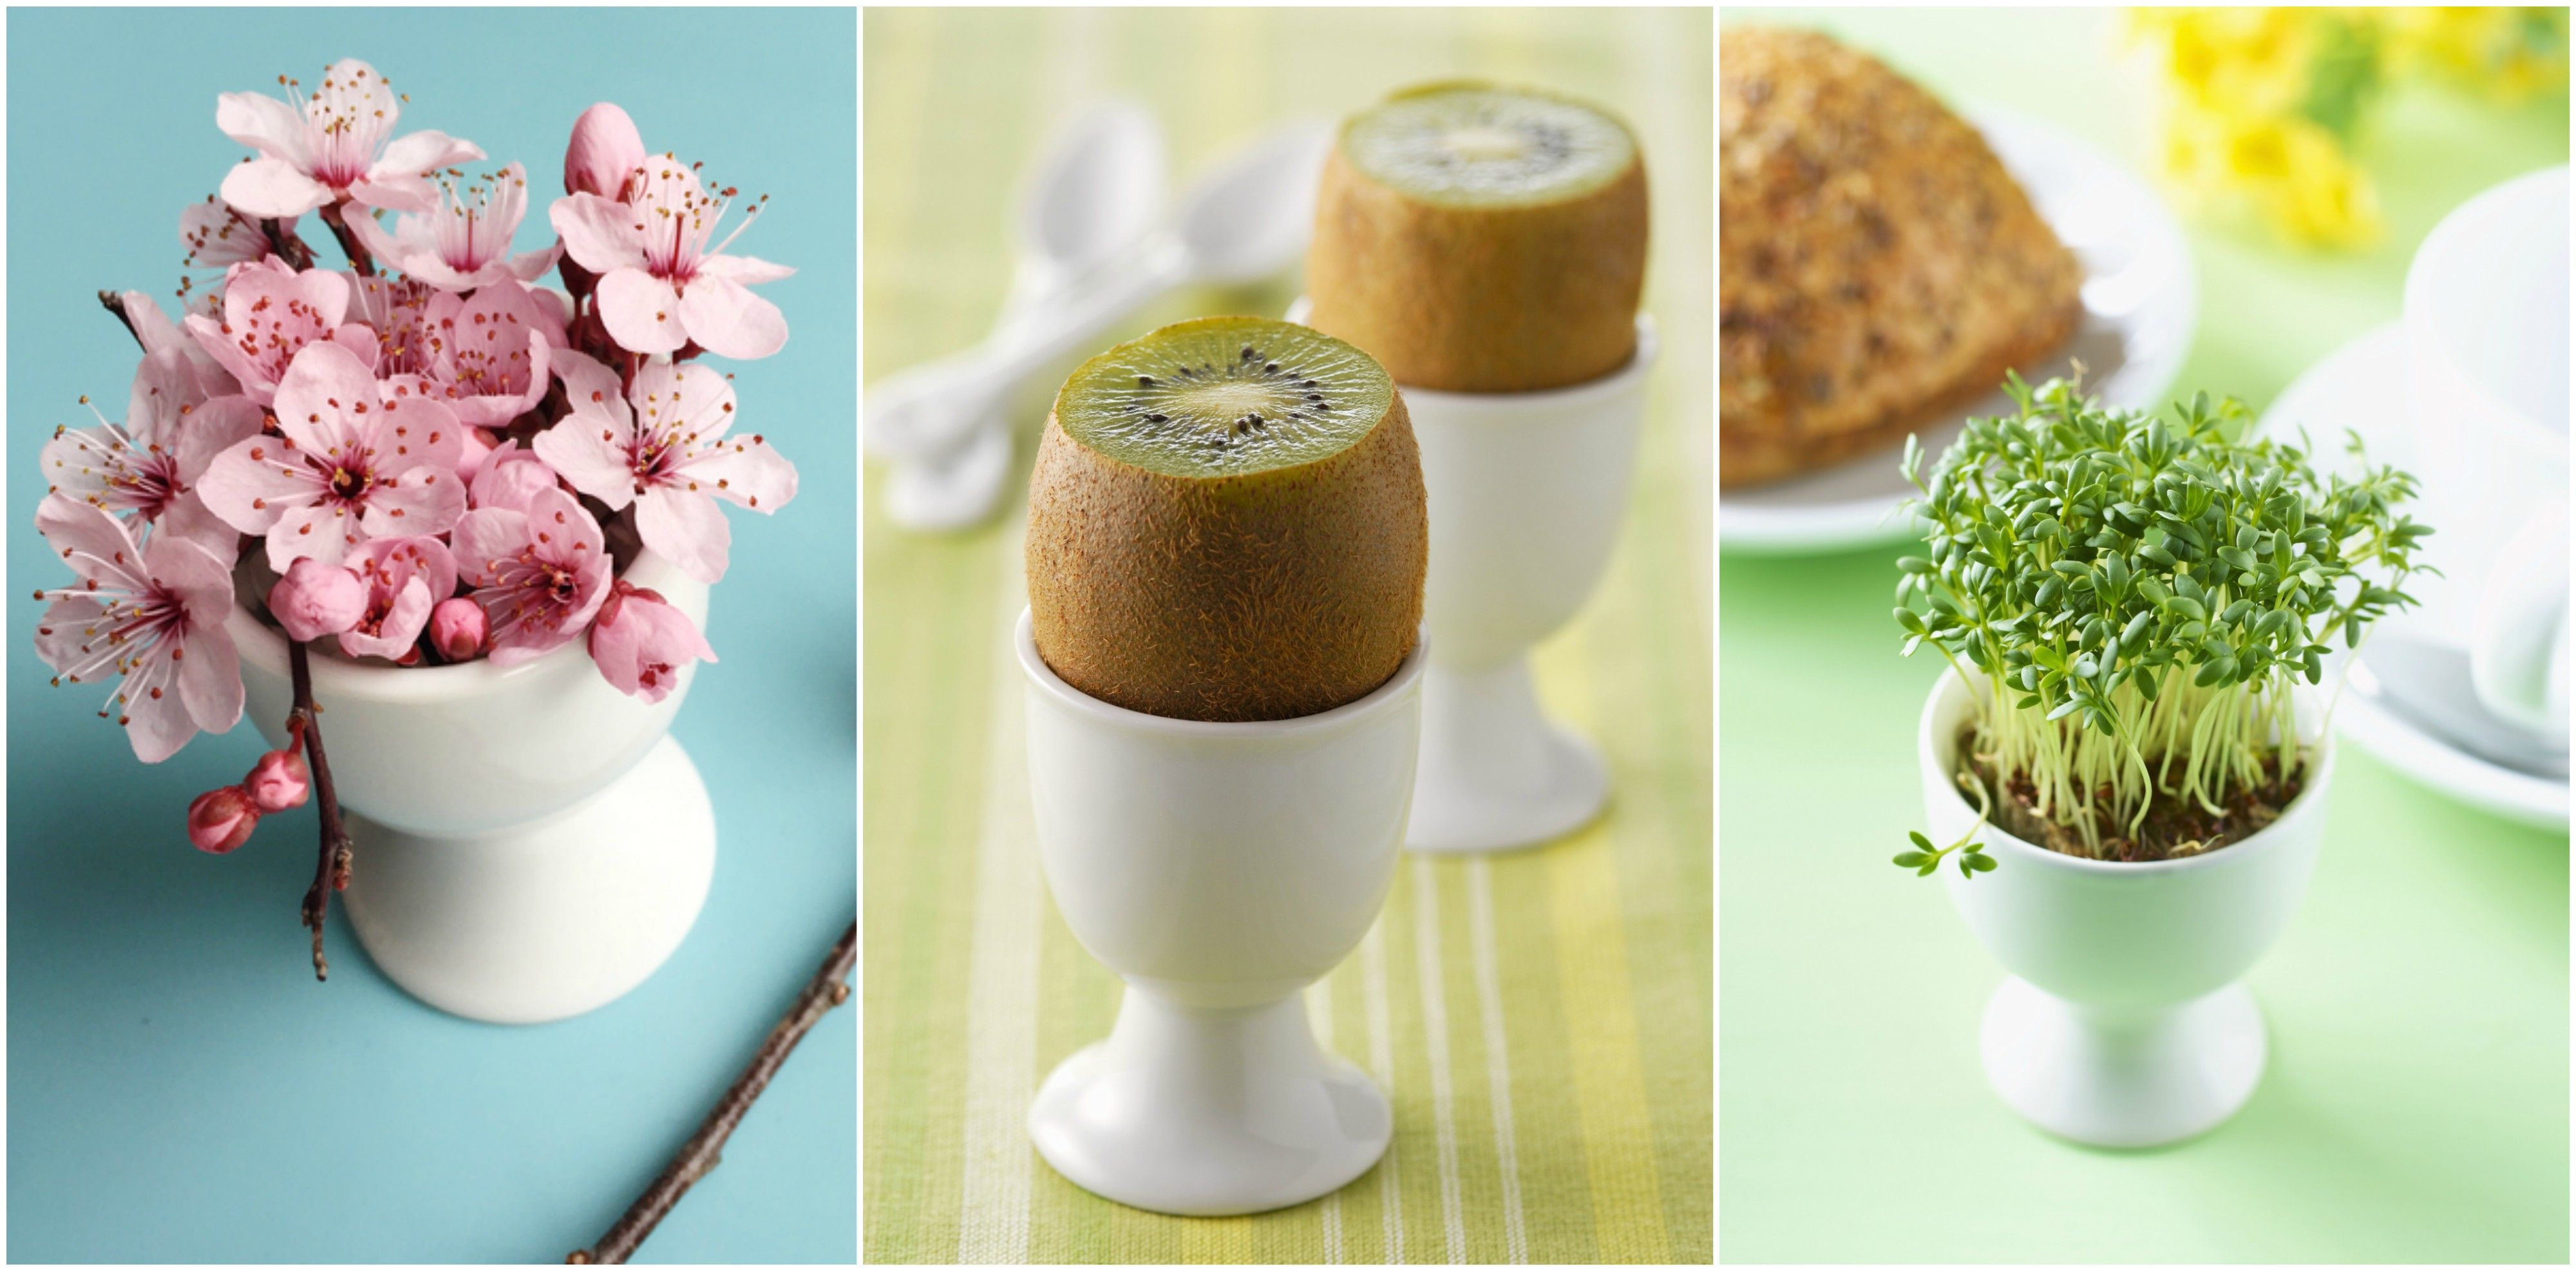 10 amazing alternative uses for egg cups